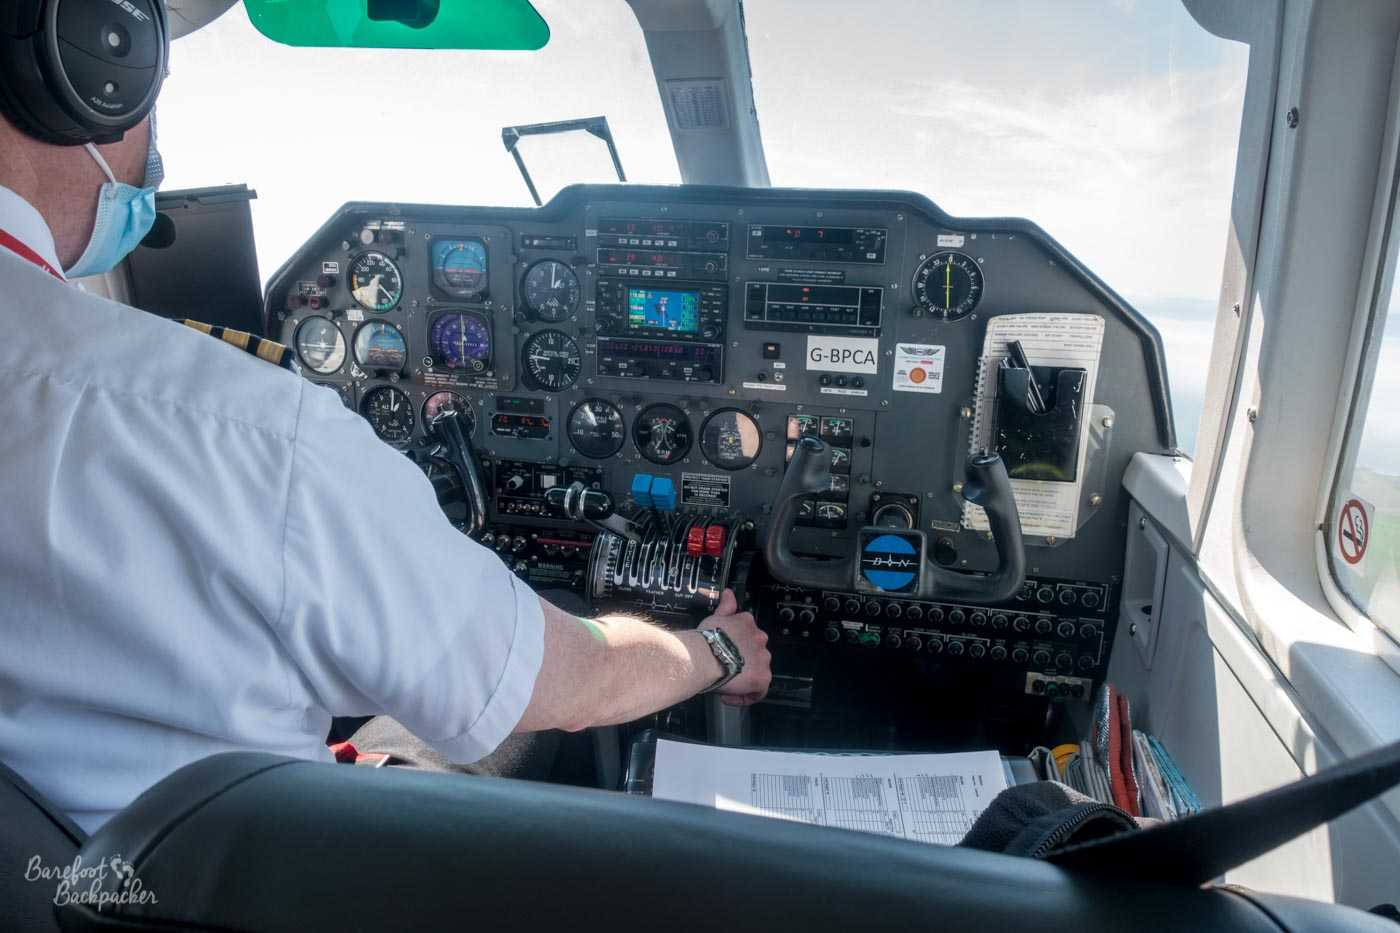 A shot taken from inside one of the inter-island aeroplanes. The view from my seat is pretty much entirely of the cockpit and the flight dashboard – it's literally the seat in front of me.